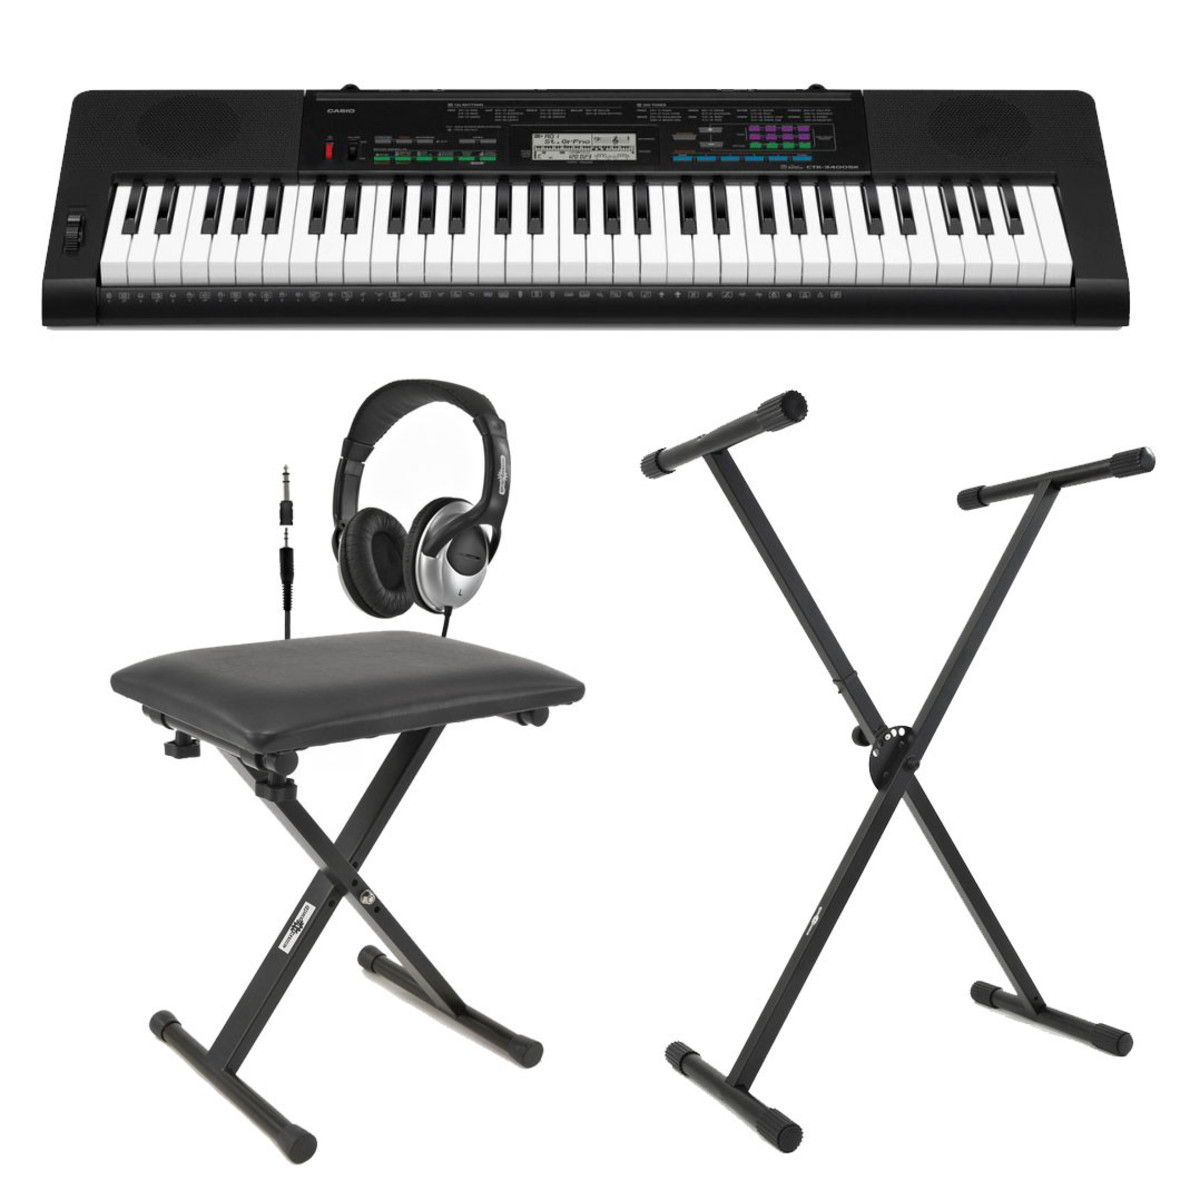 Casio Ctk 3400 Portable Keyboard With Bench Headphones And Stand At